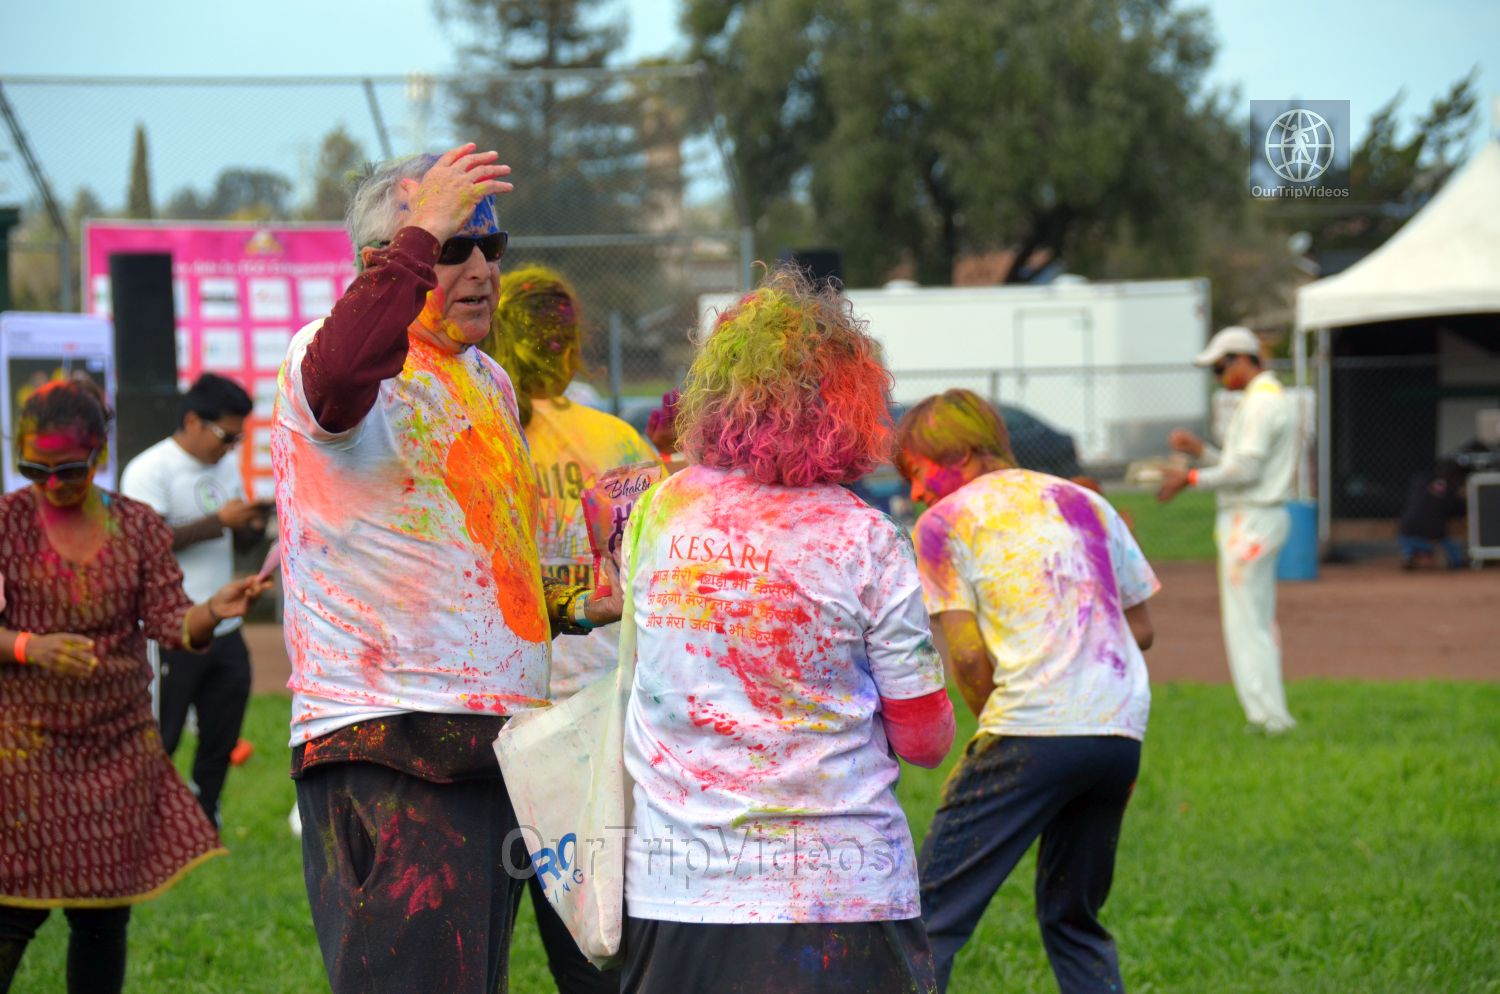 Festival of Colors - FOG and UPMA Holi, Fremont,CA, USA - Picture 8 of 25